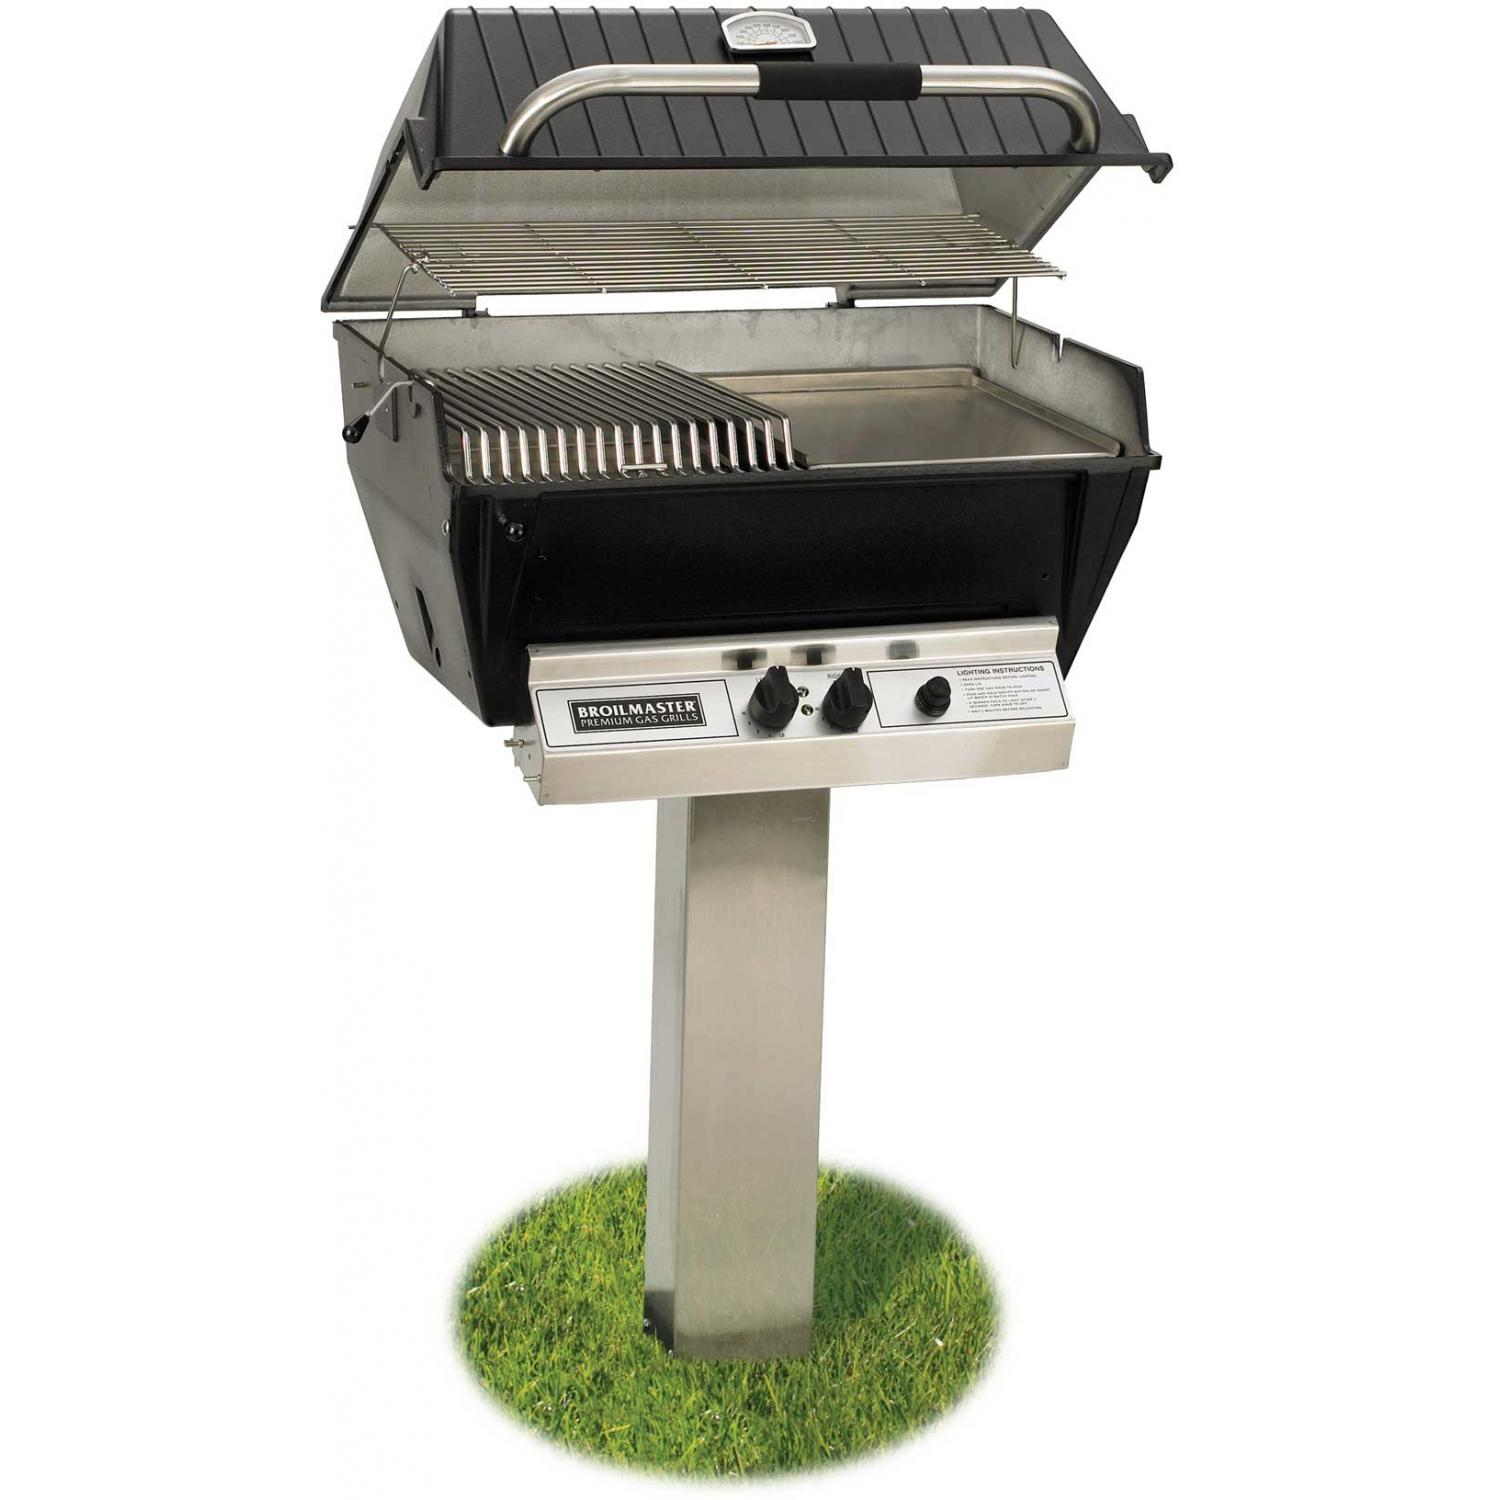 Broilmaster P3-SXN Super Premium Natural Gas Grill On Stainless Steel In-Ground Post 2824438